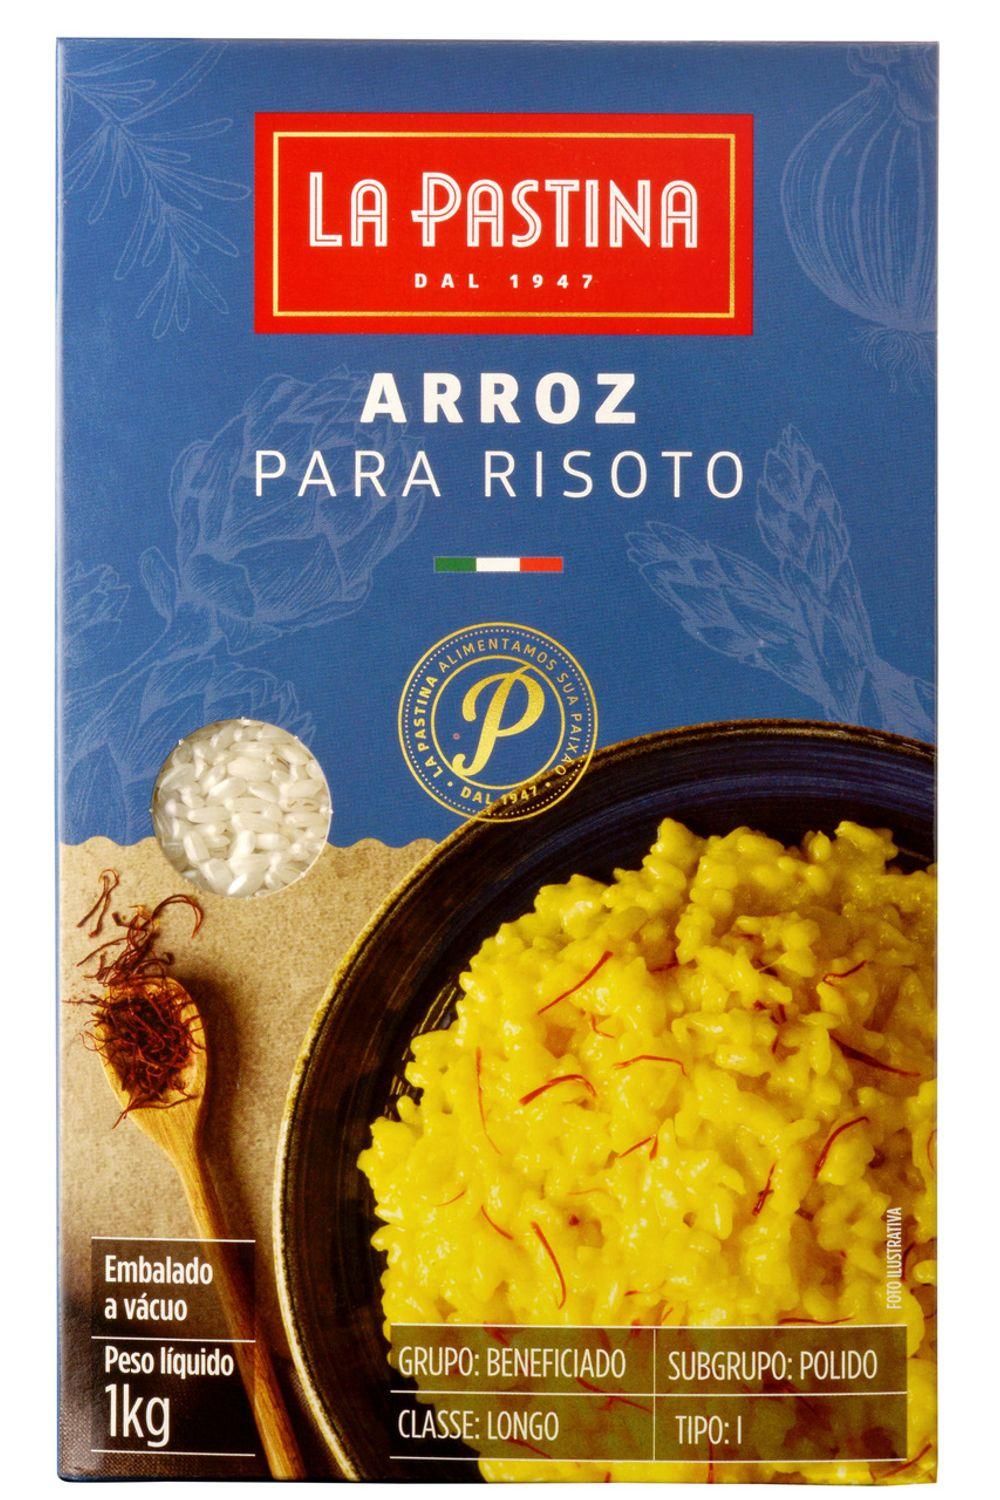 020313-ARROZ-IT-LA-PASTINA-PRISOTO-1KG_Easy-Resize.com